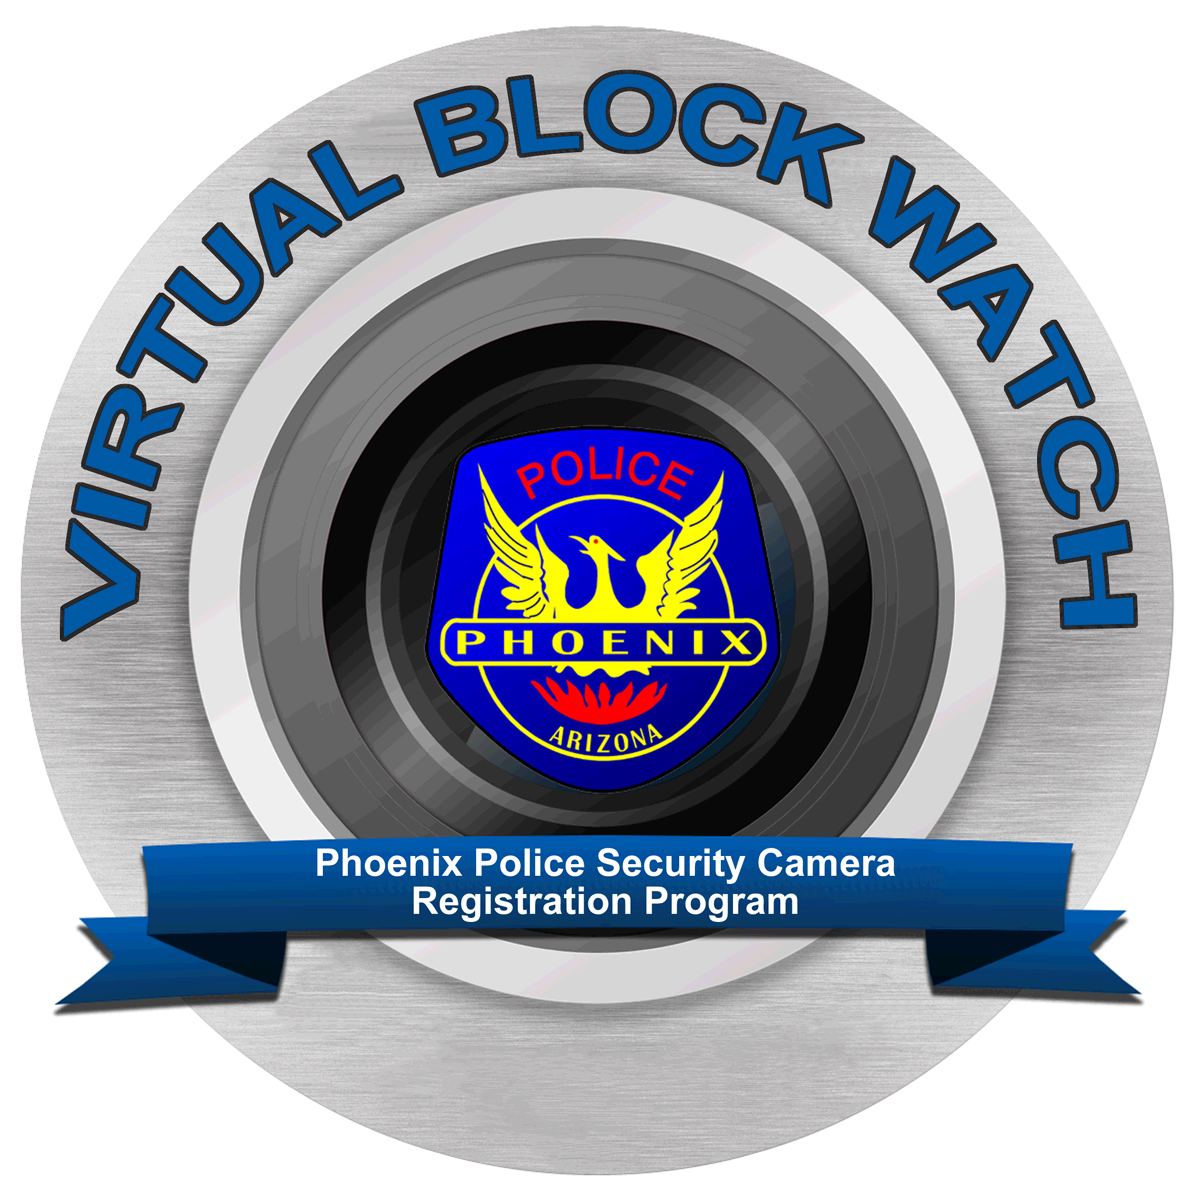 VirtualBlockWatch